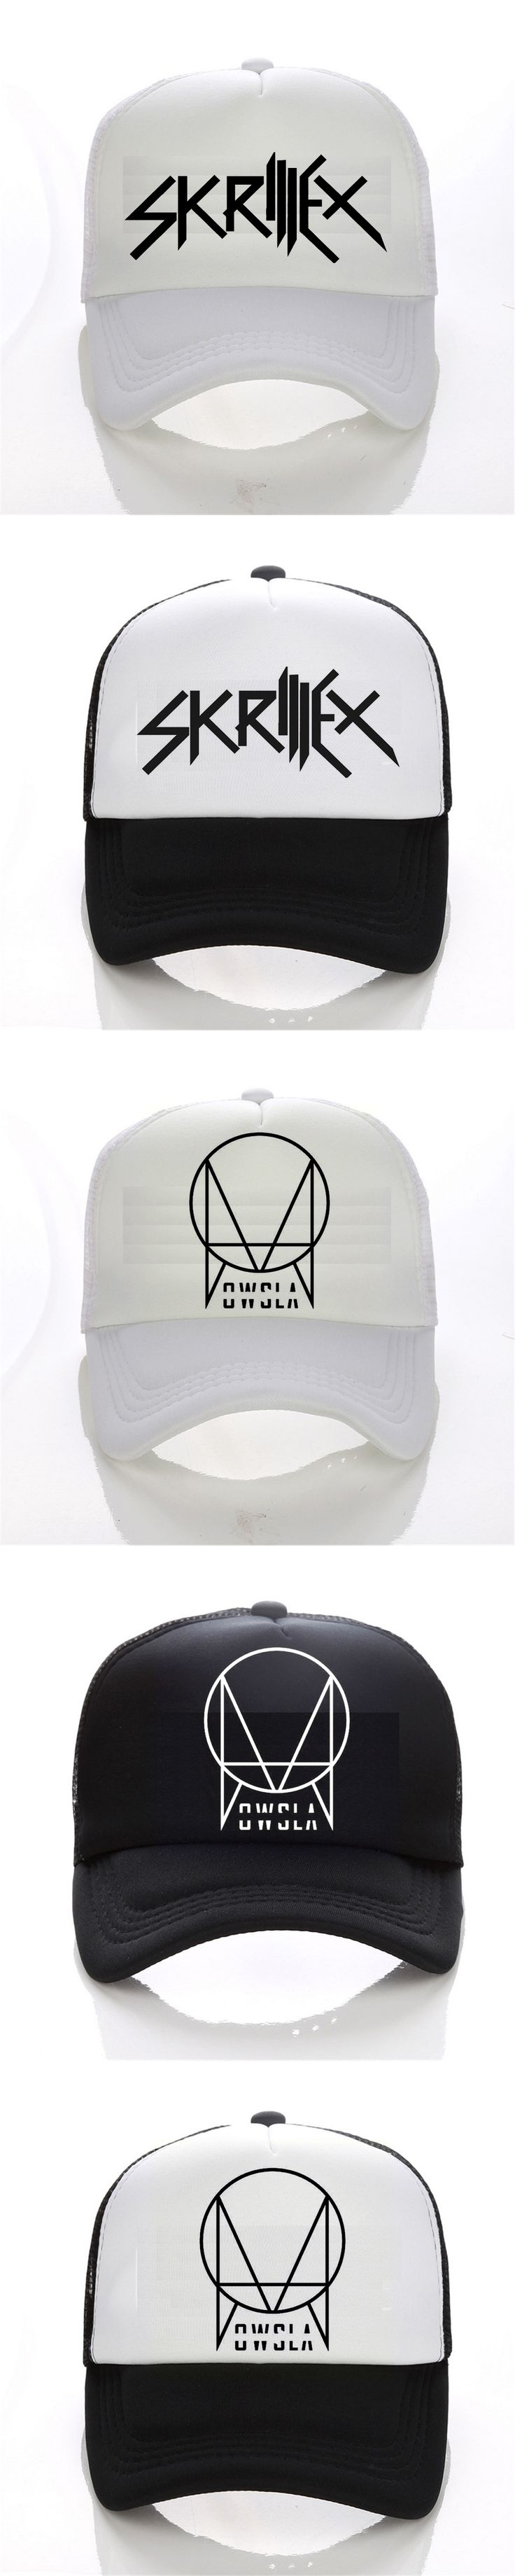 2016 New Summer OWSLA Logo cap Men DJ Skrillex baseball cap  Men Hip Hop women snapback hats